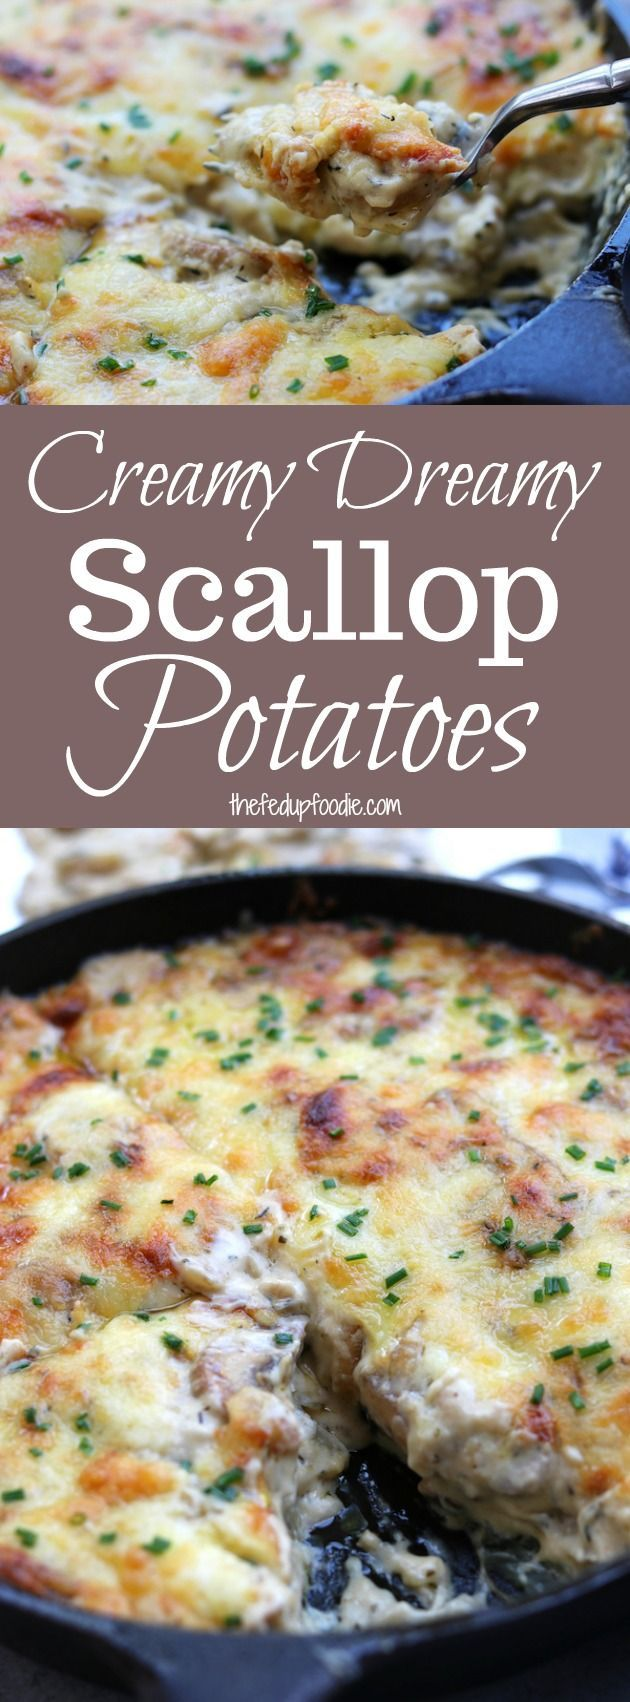 Made from scratch, Creamy Dreamy Scallop Potatoes recipe is the ultimate Holiday side dish. Full of comfort and oozing with a cheesy herbed mushroom cream sauce, your taste buds with be delighted. #holiday #sidedish #comfortfood https://www.thefedupfoodie.com